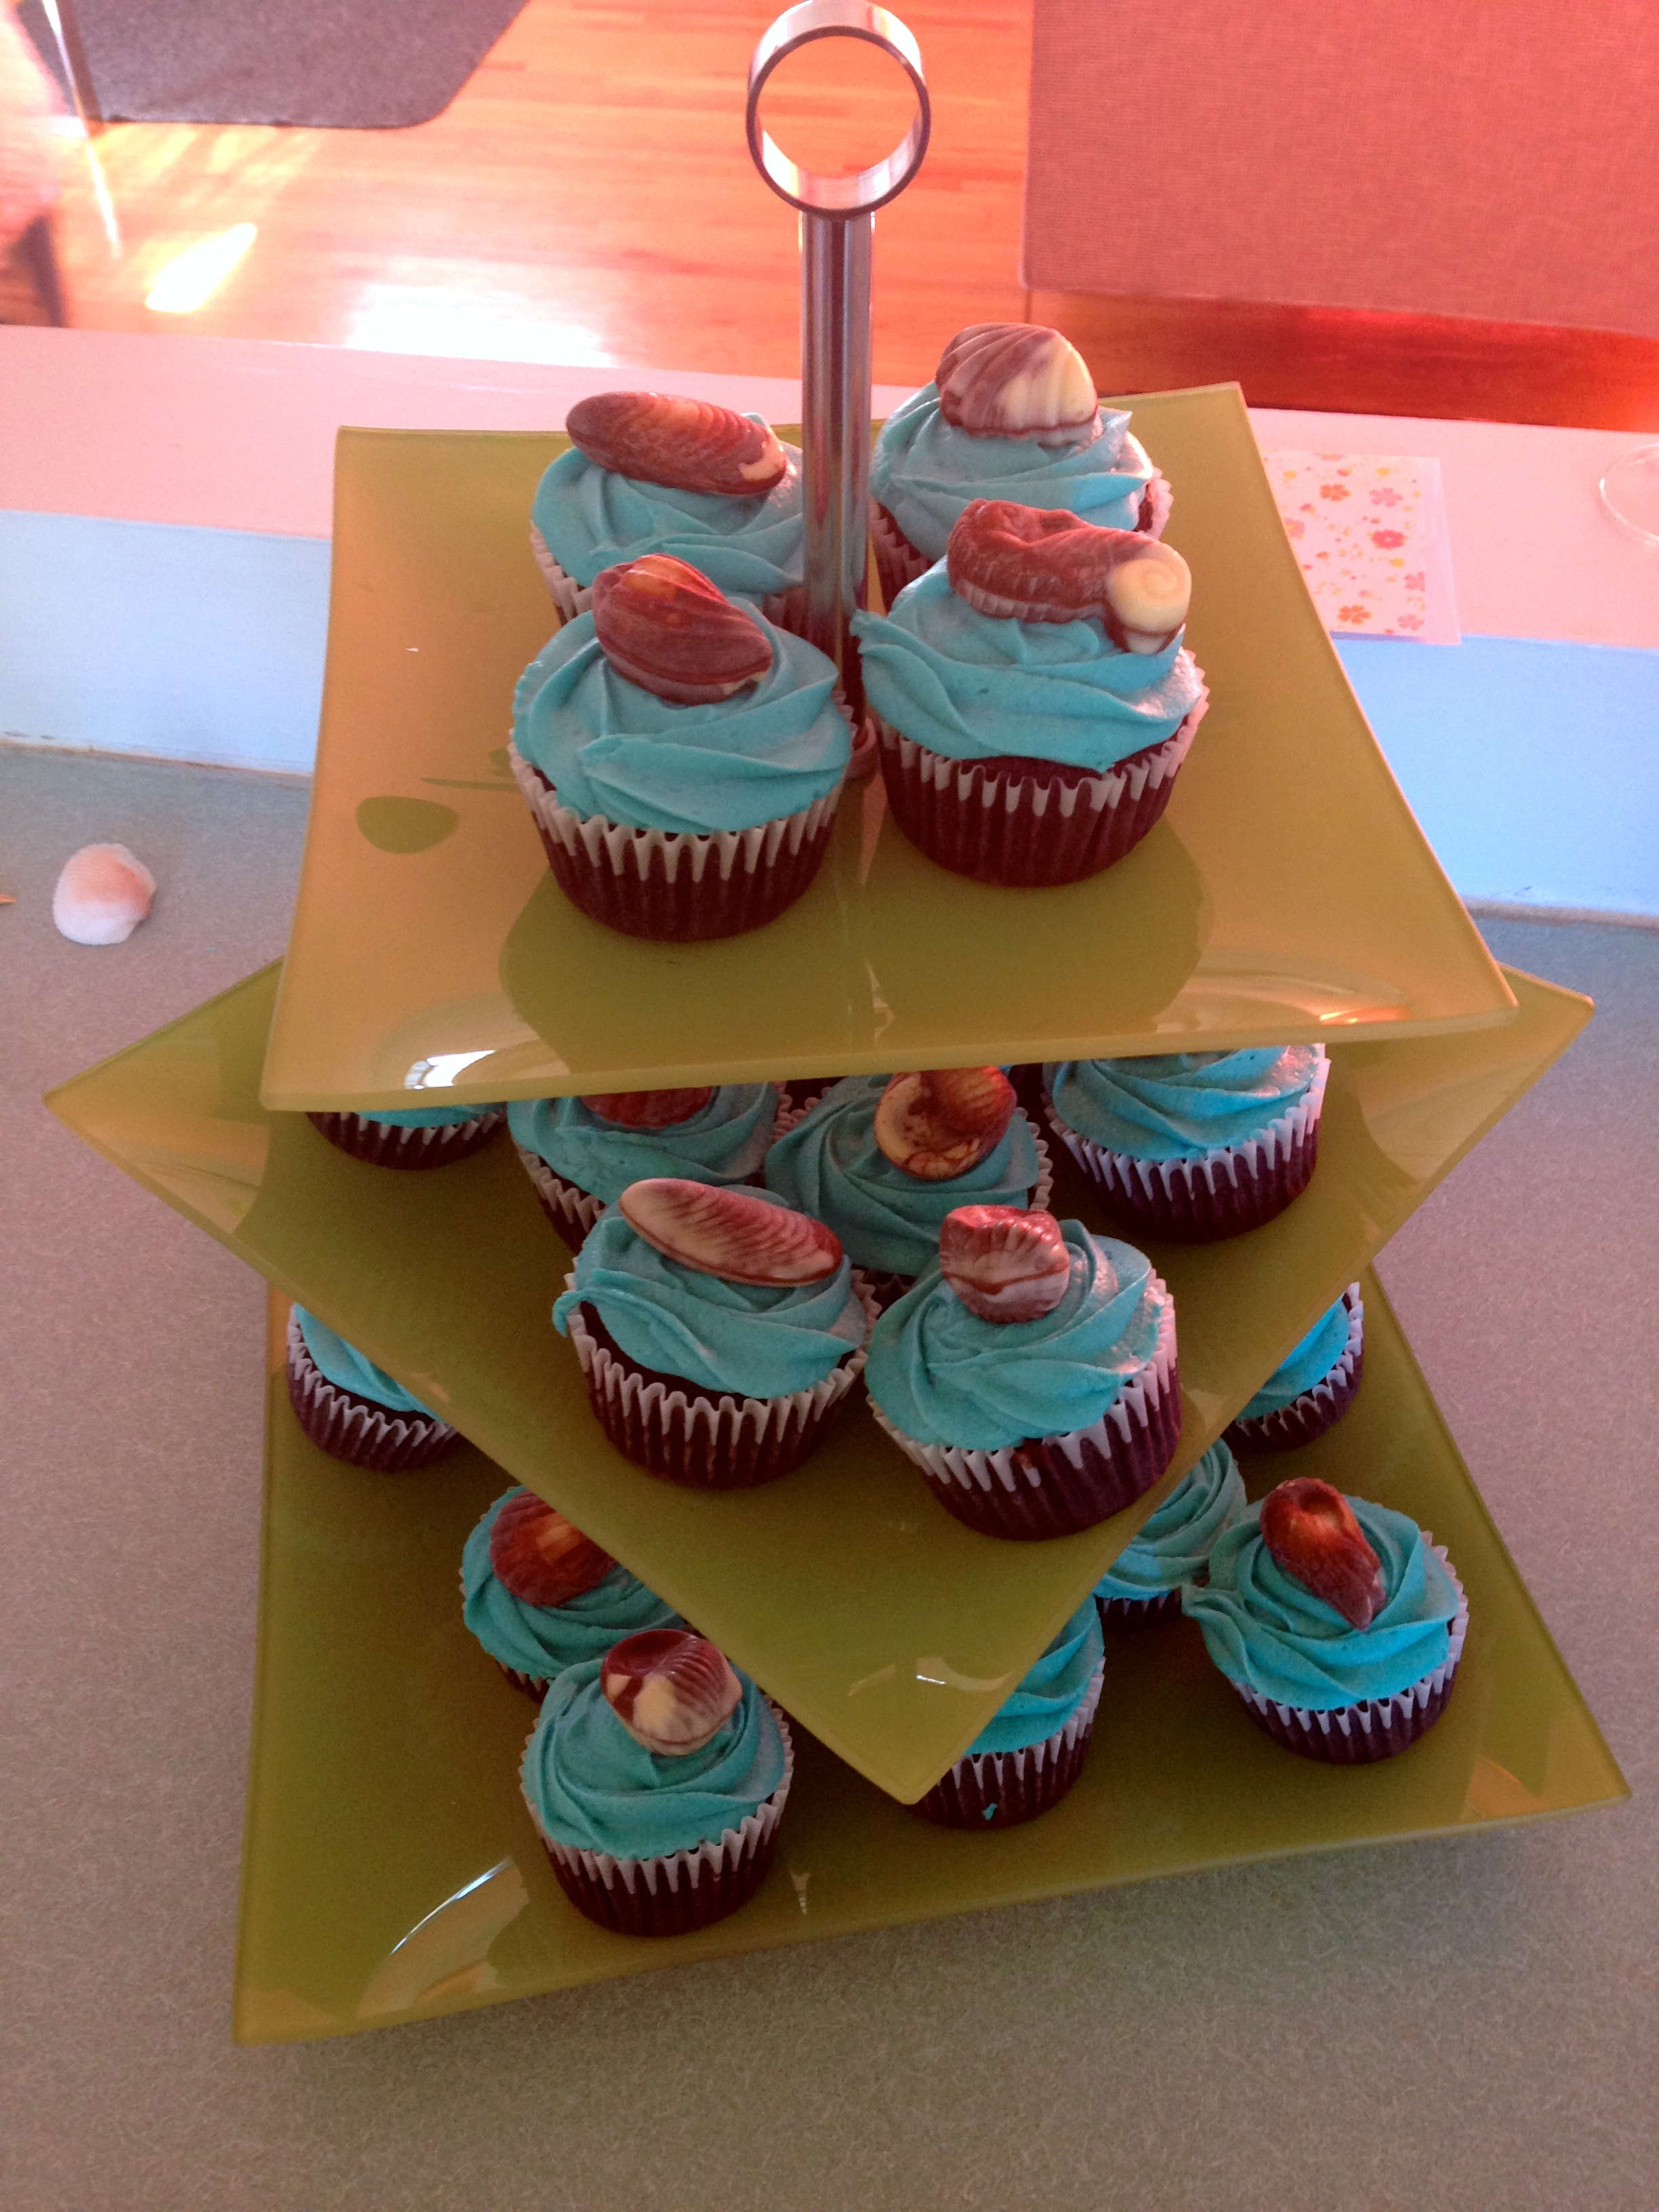 I enrolled some baking friends for these yummy gluten-free cupcakes!